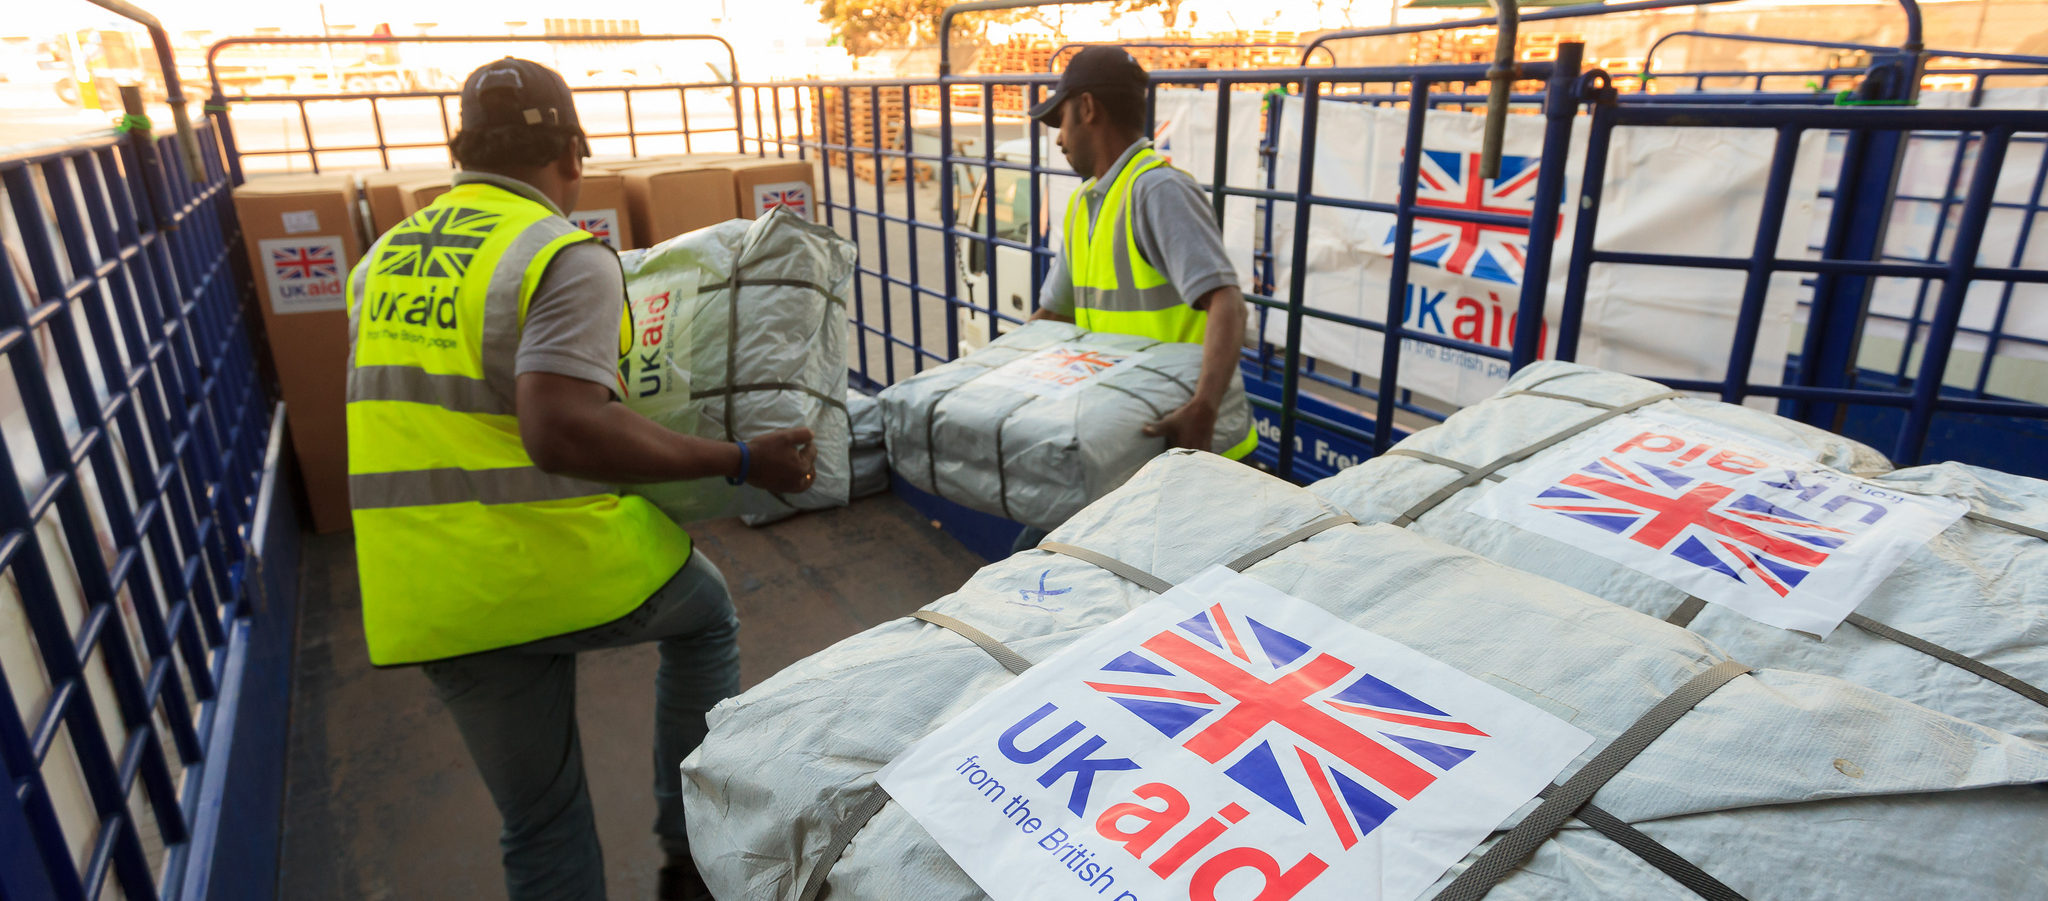 UK research's impact on international development. Photo cred - DFID, UK aid shelter kits are loaded for shipment in Dubai